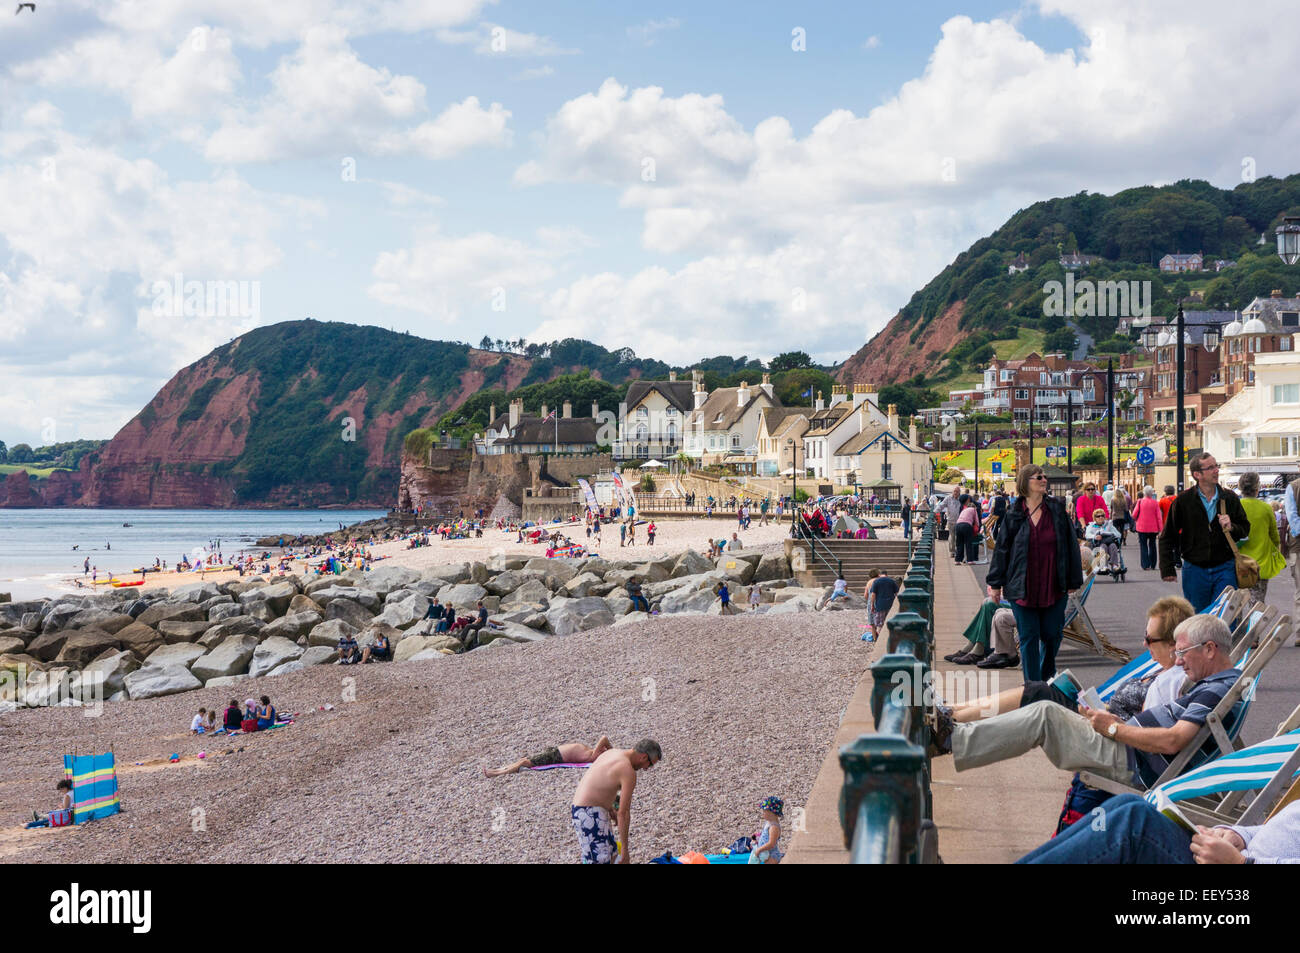 Coast, promenade and beach at Sidmouth, East Devon, England, UK in summer - Stock Image